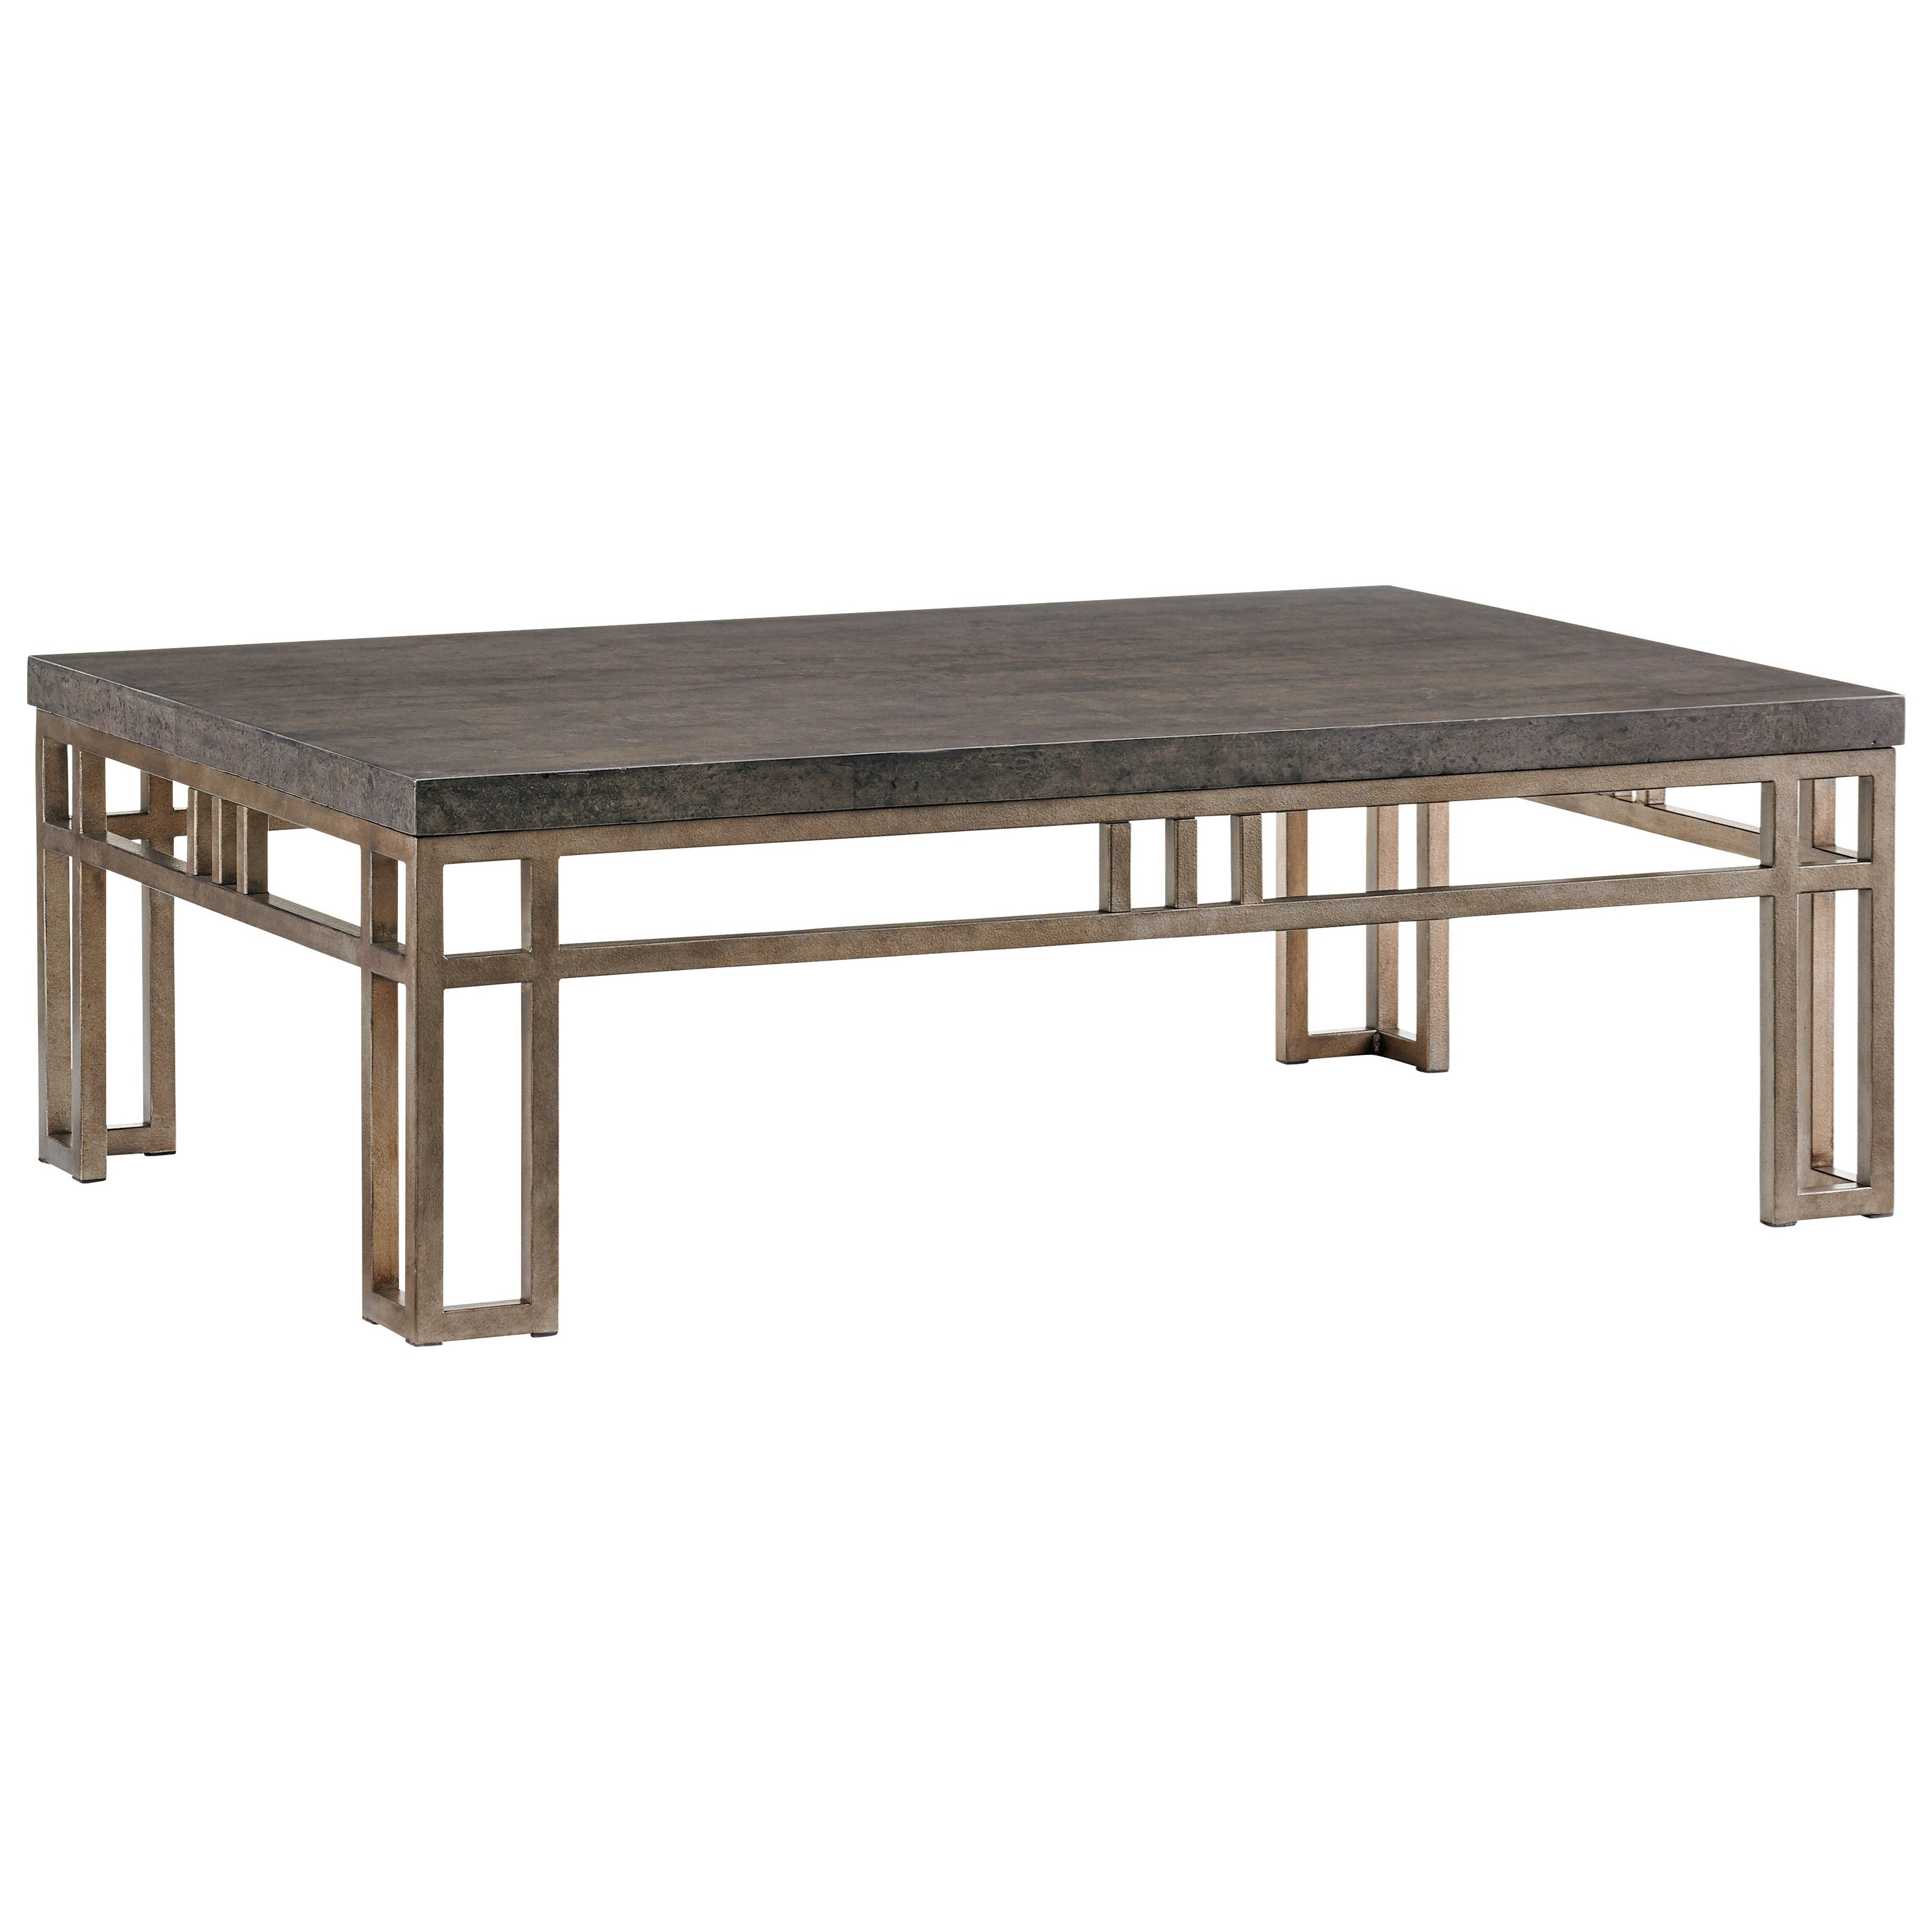 Cypress Point Montera Travertine Cocktail Table by Tommy Bahama Home at Wayside Furniture